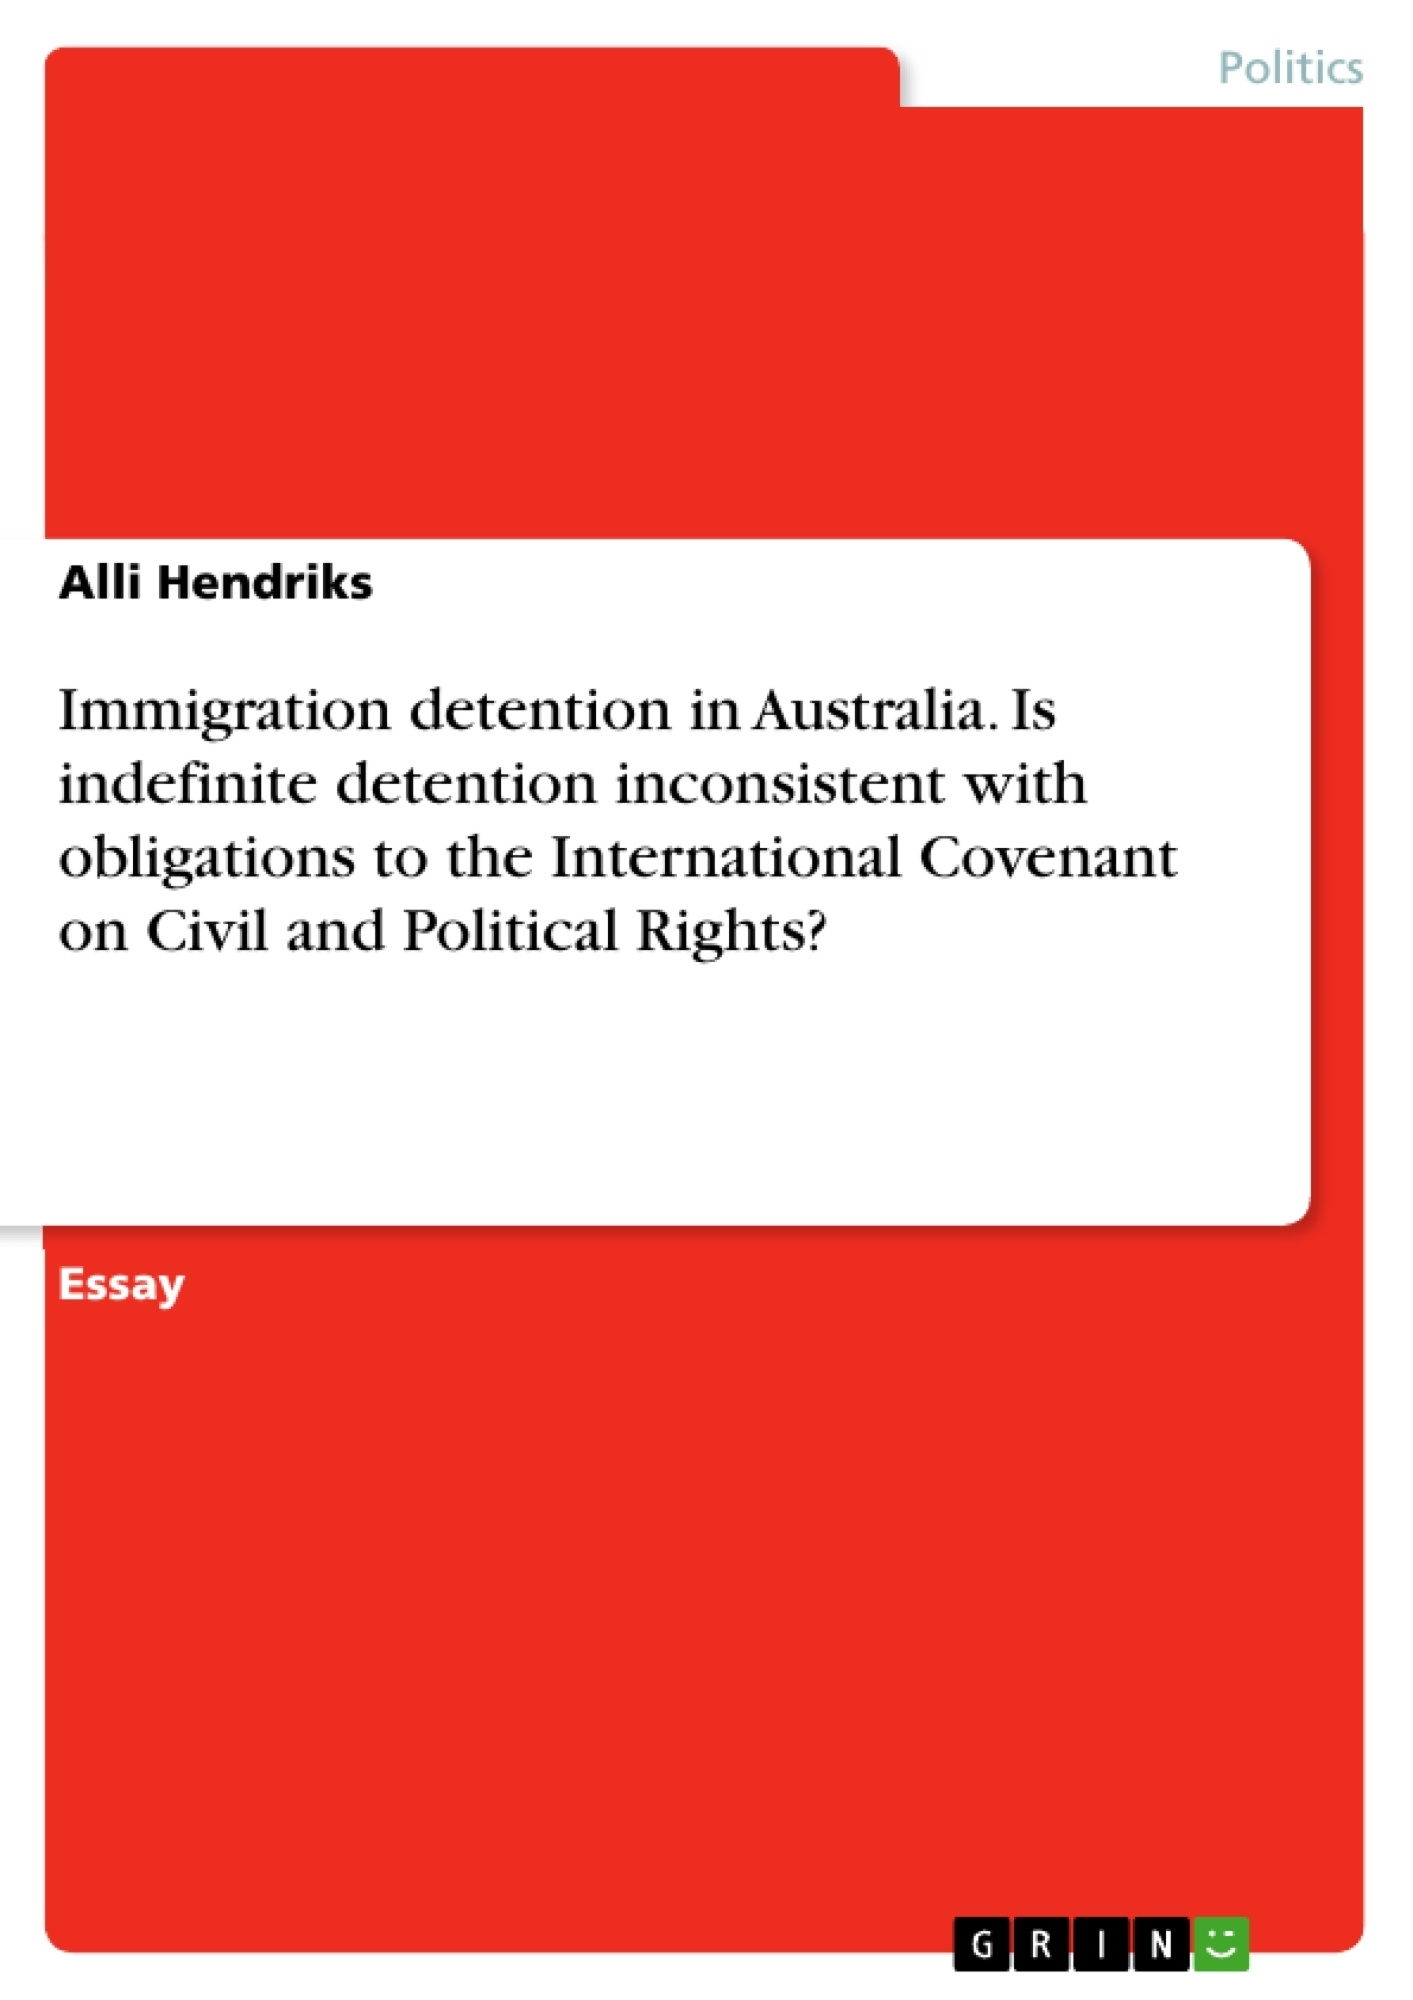 Title: Immigration detention in Australia. Is indefinite detention inconsistent with obligations to the International Covenant on Civil and Political Rights?